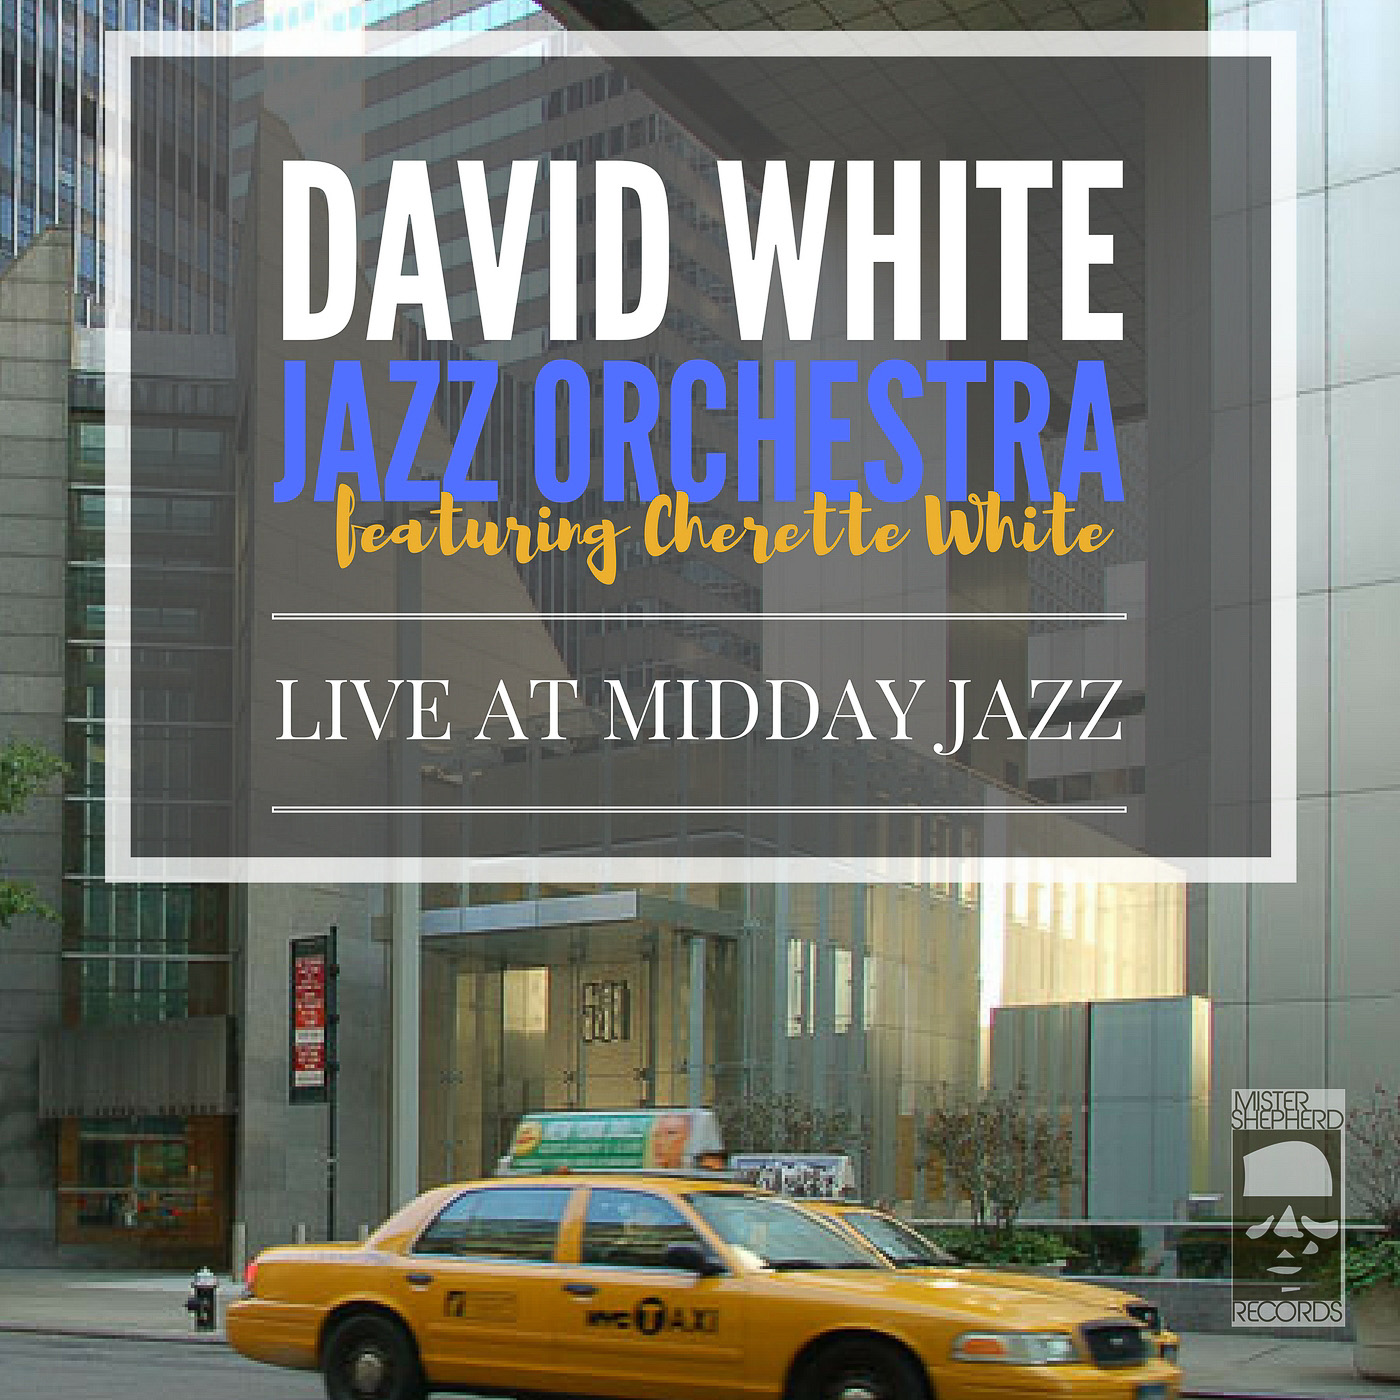 album cover-live-at-midday-jazz-david-white-jazz-orchestra-featuring-cherette-white.JPG